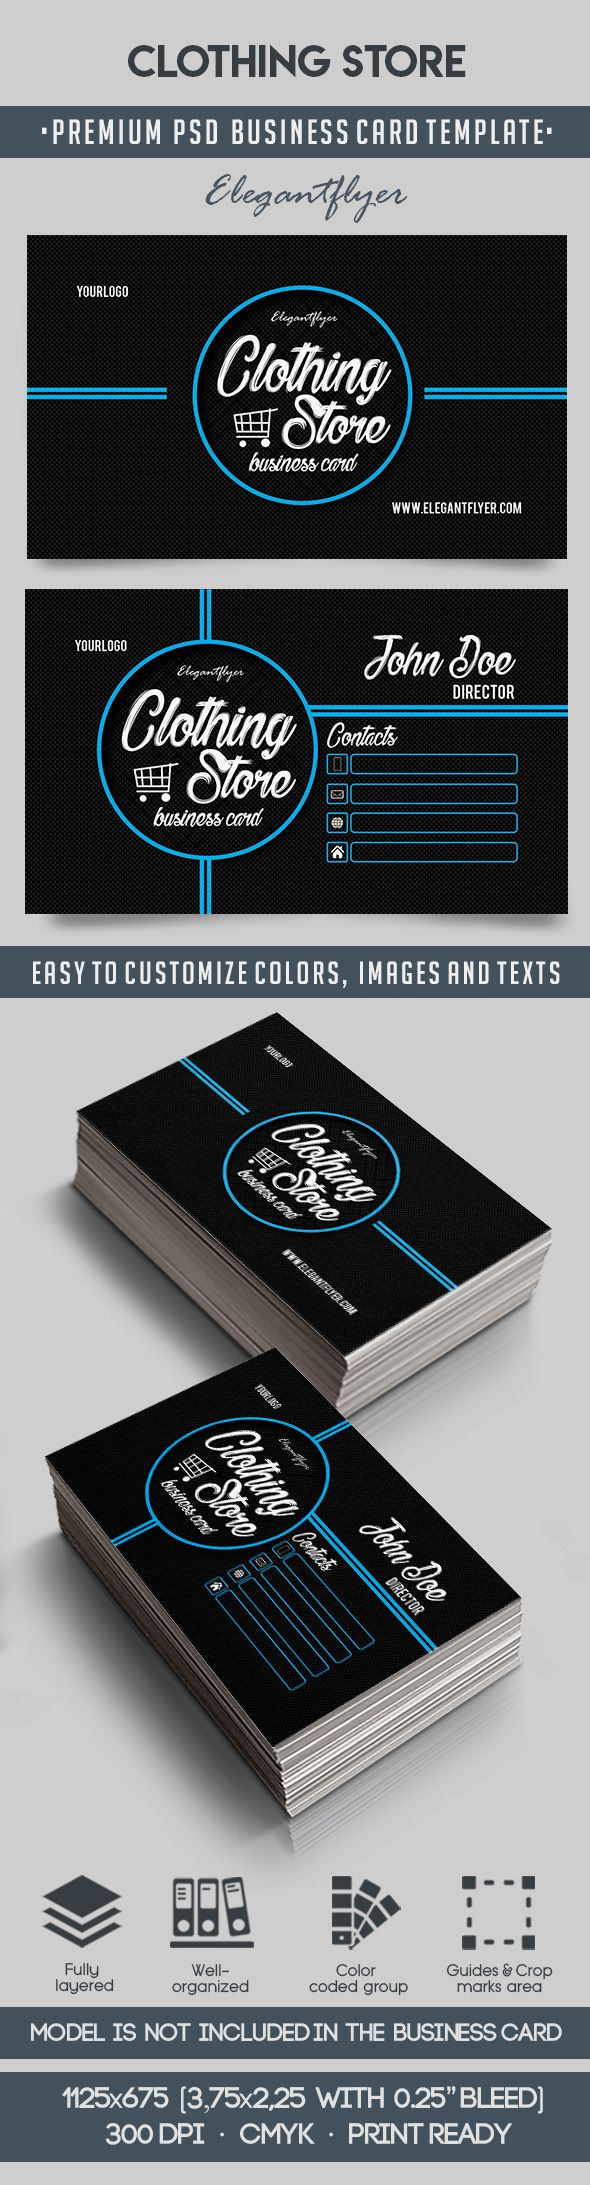 Clothing Store – Premium Business Card Templates PSD